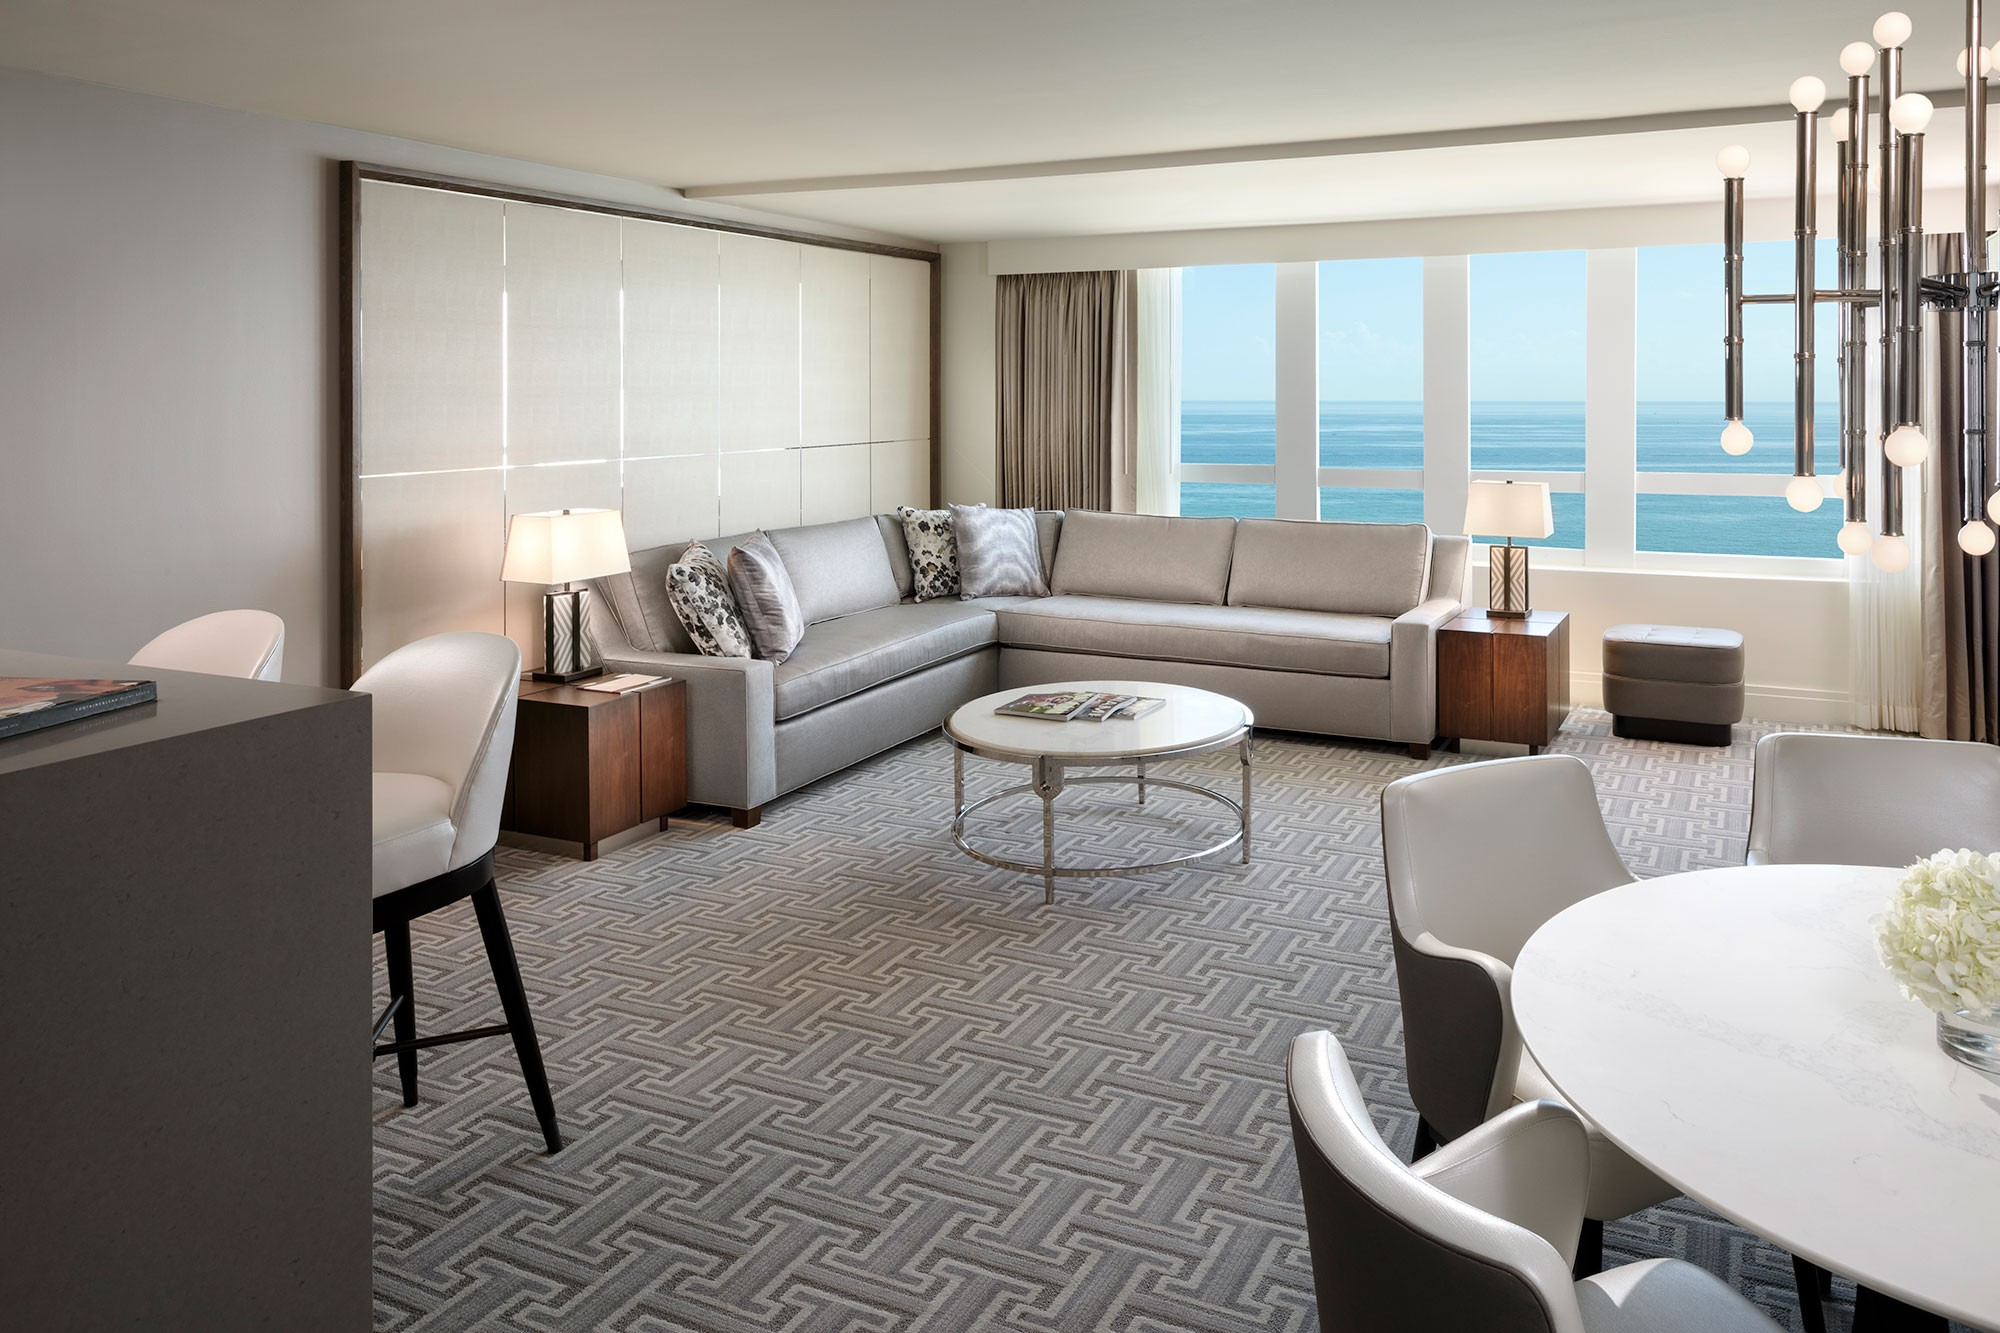 Miami Meeting Rooms Fontainebleau Miami Beach Meeting Rooms Meeting Rooms Miami Two Bedroom Suites Bedroom Hotel One Bedroom Apartment